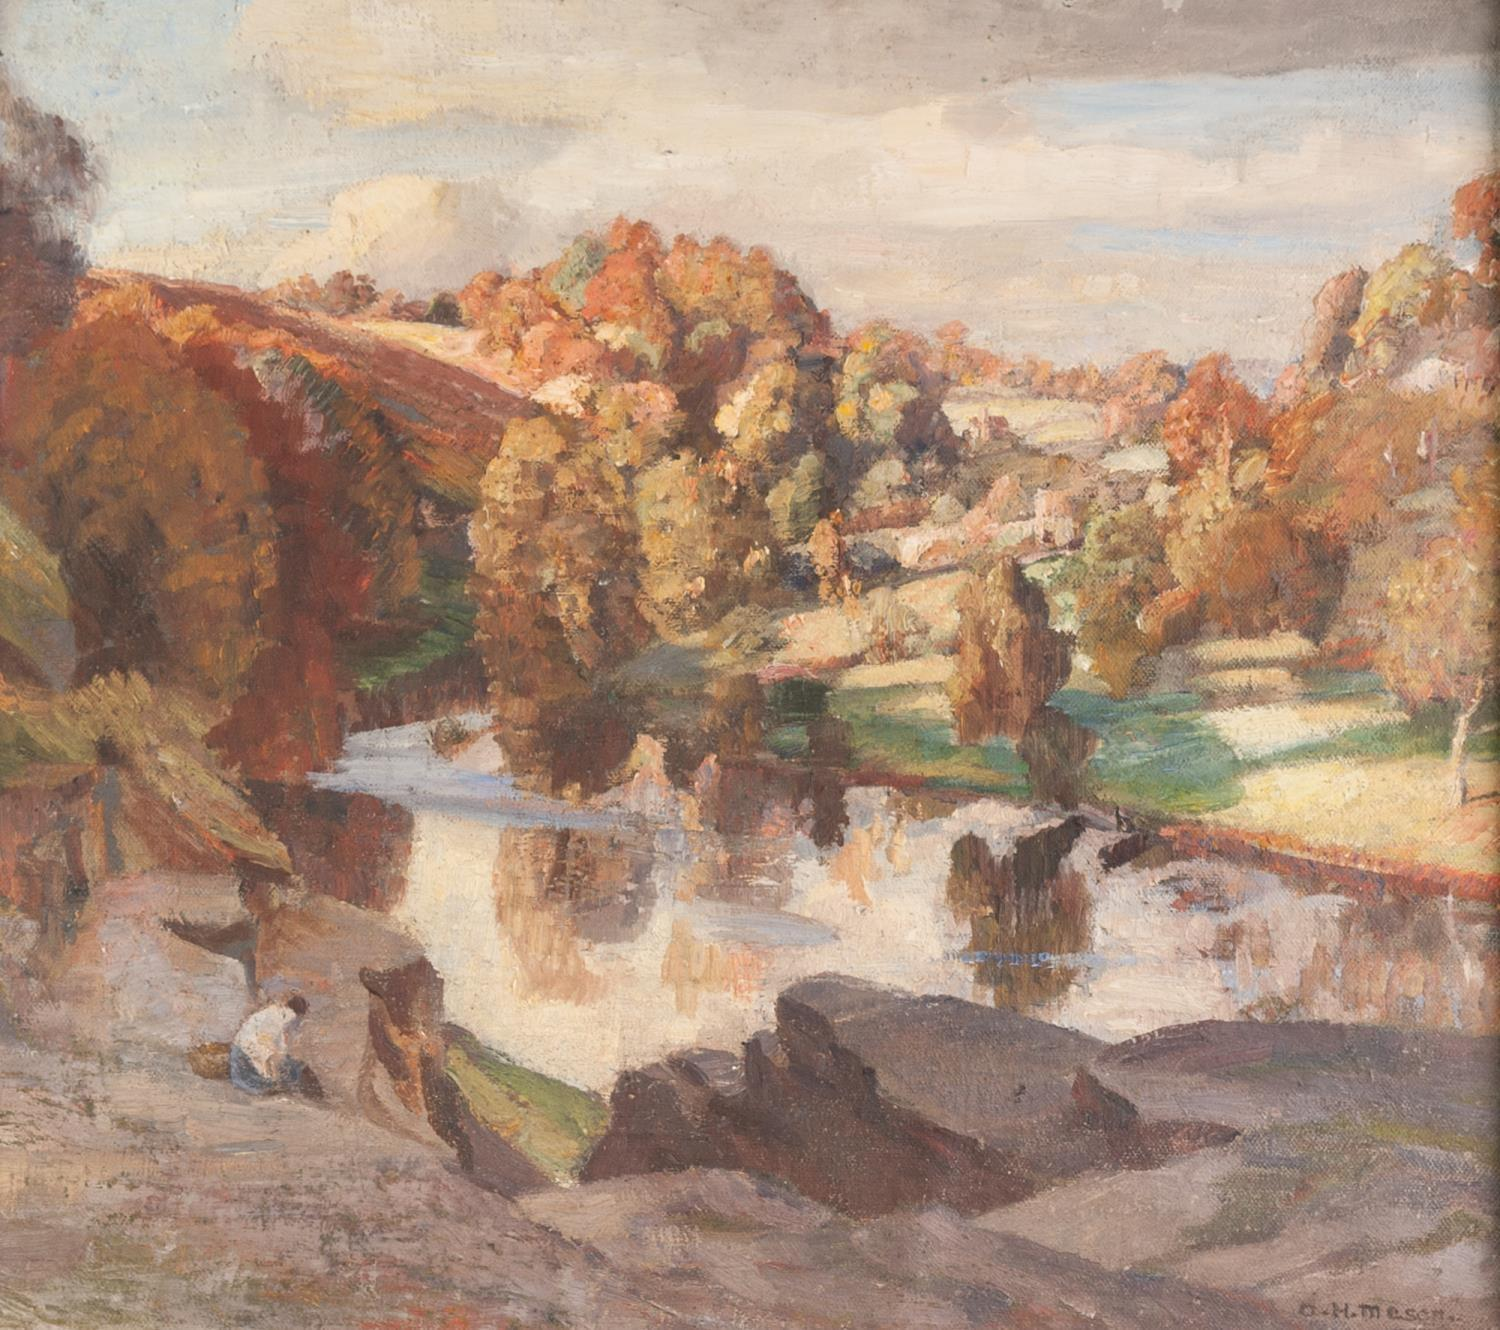 ARNOLD HENRY MASON (1885-1963) OIL PAINTING ON BOARD Tranquil river landscape Signed 15 ½? x 17? (